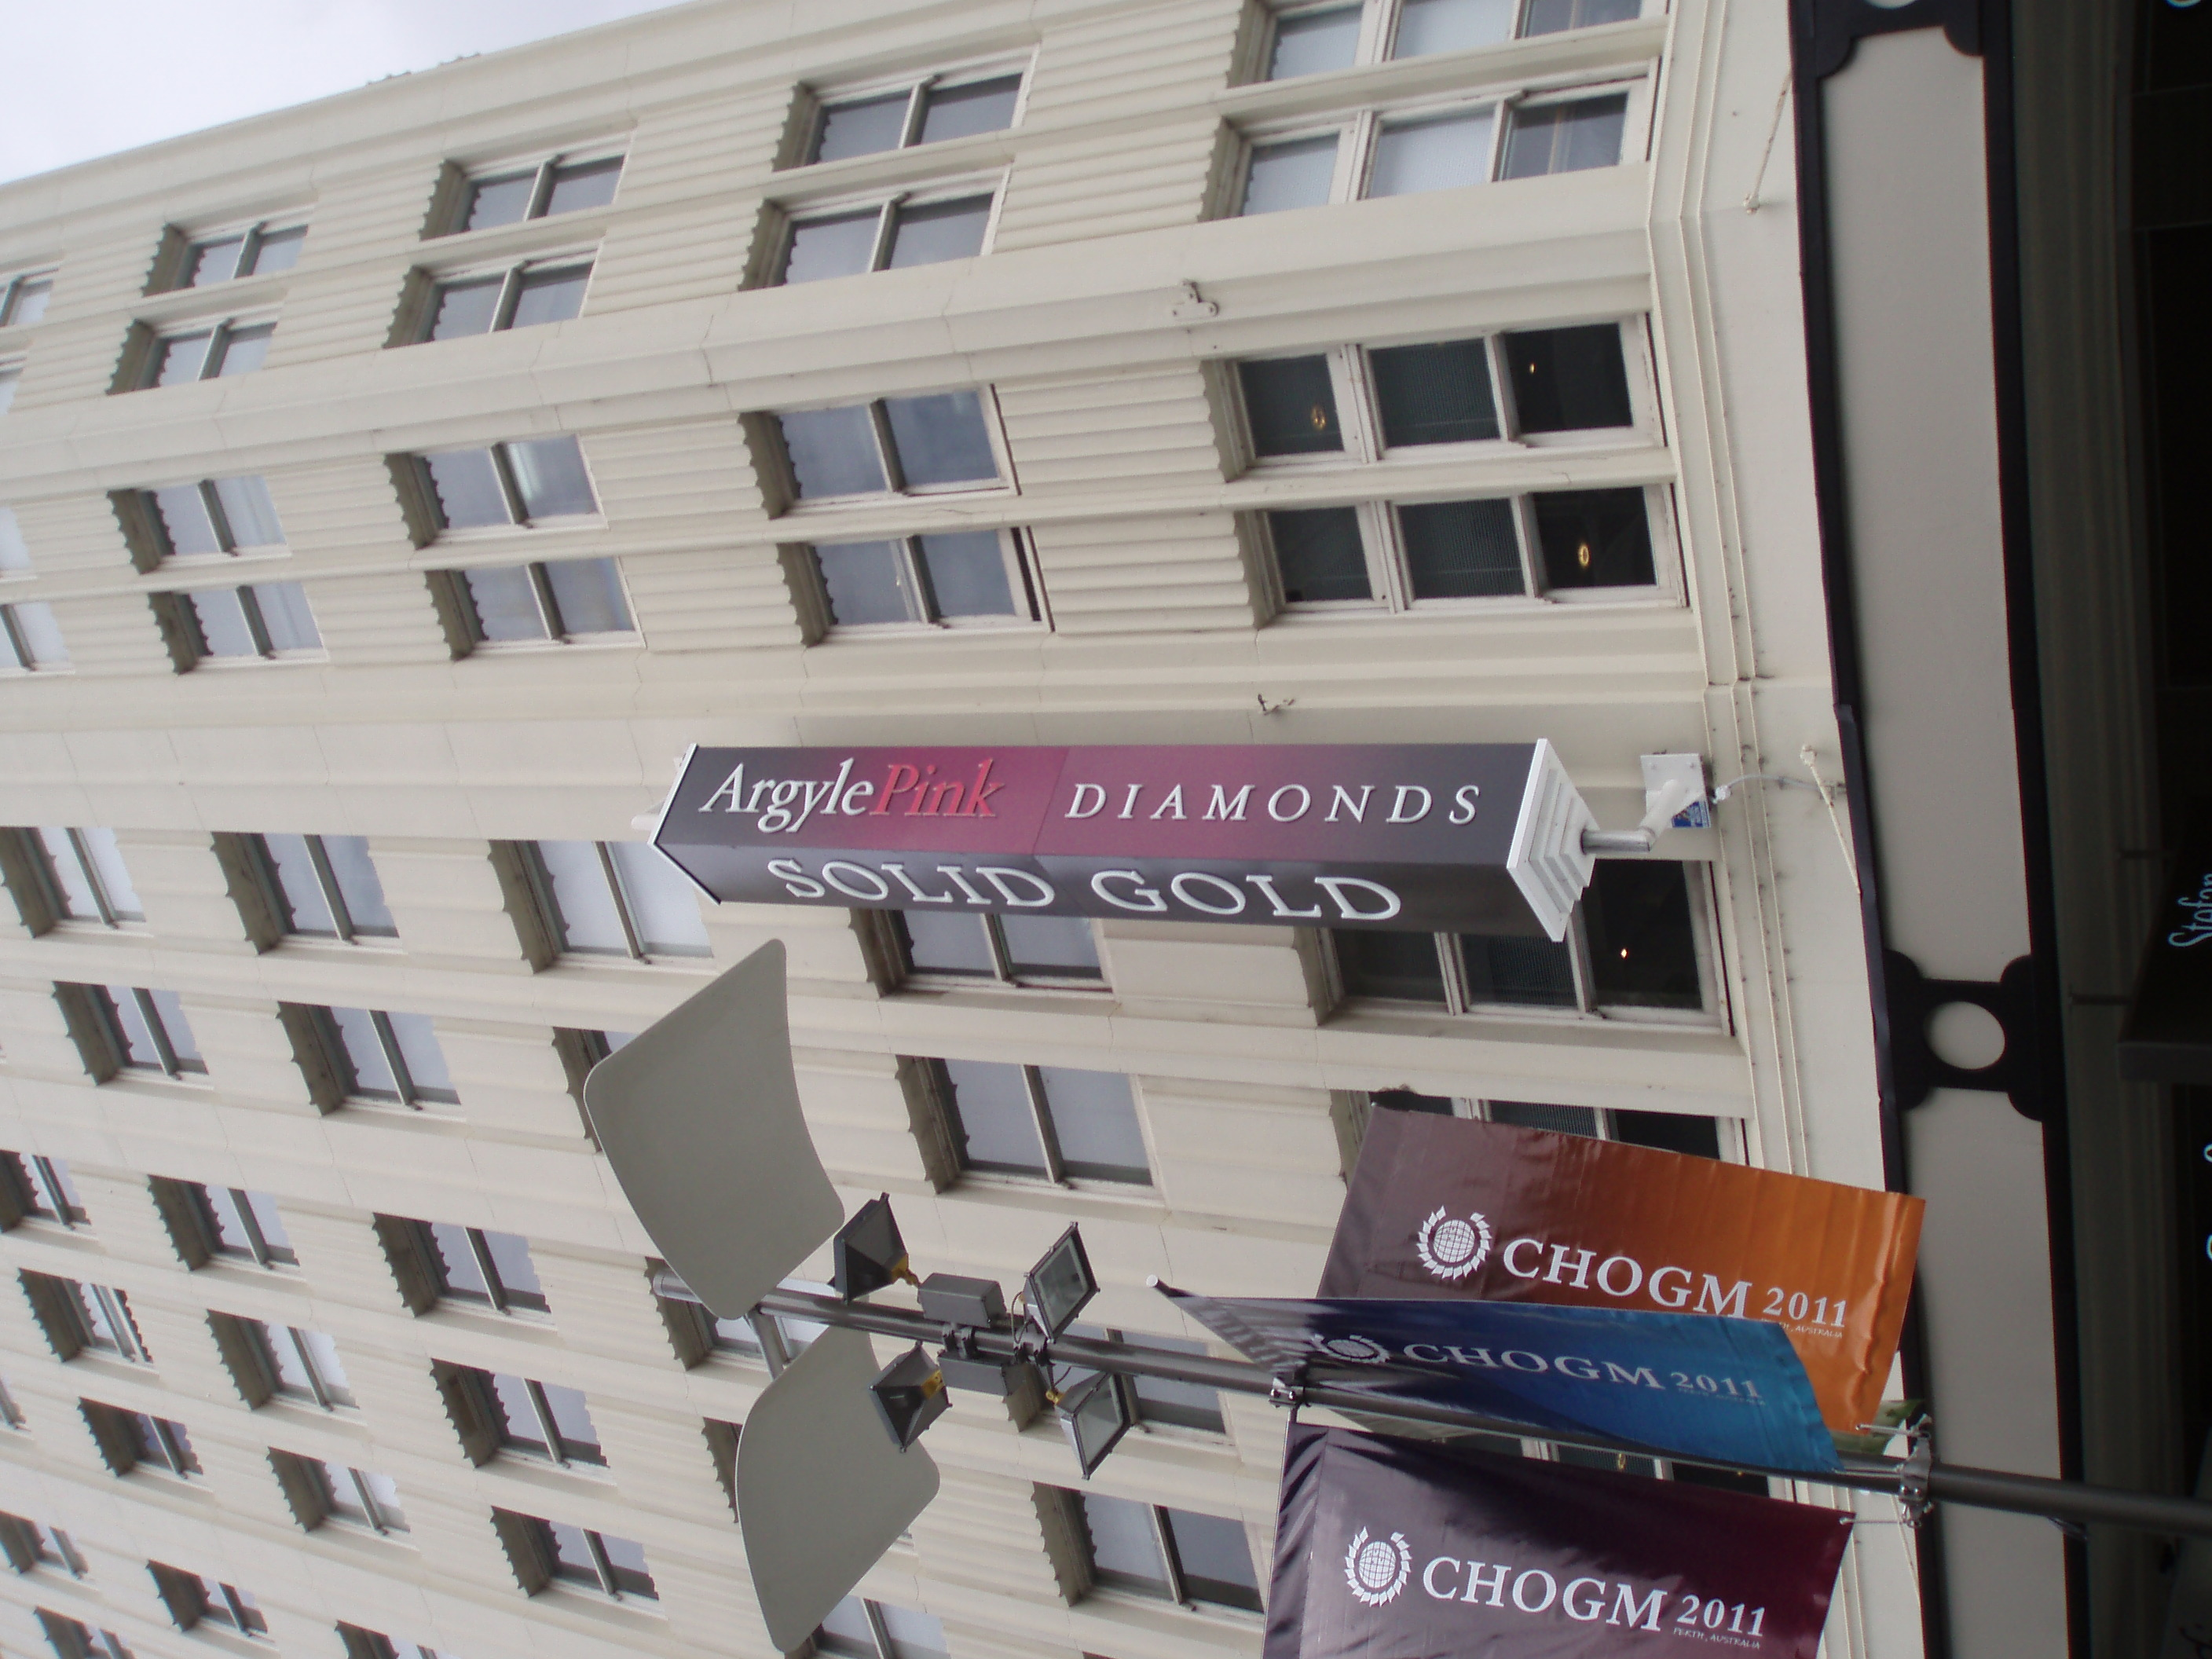 Rotating wall sign on northern facade of Gledden Building - 25-10-11